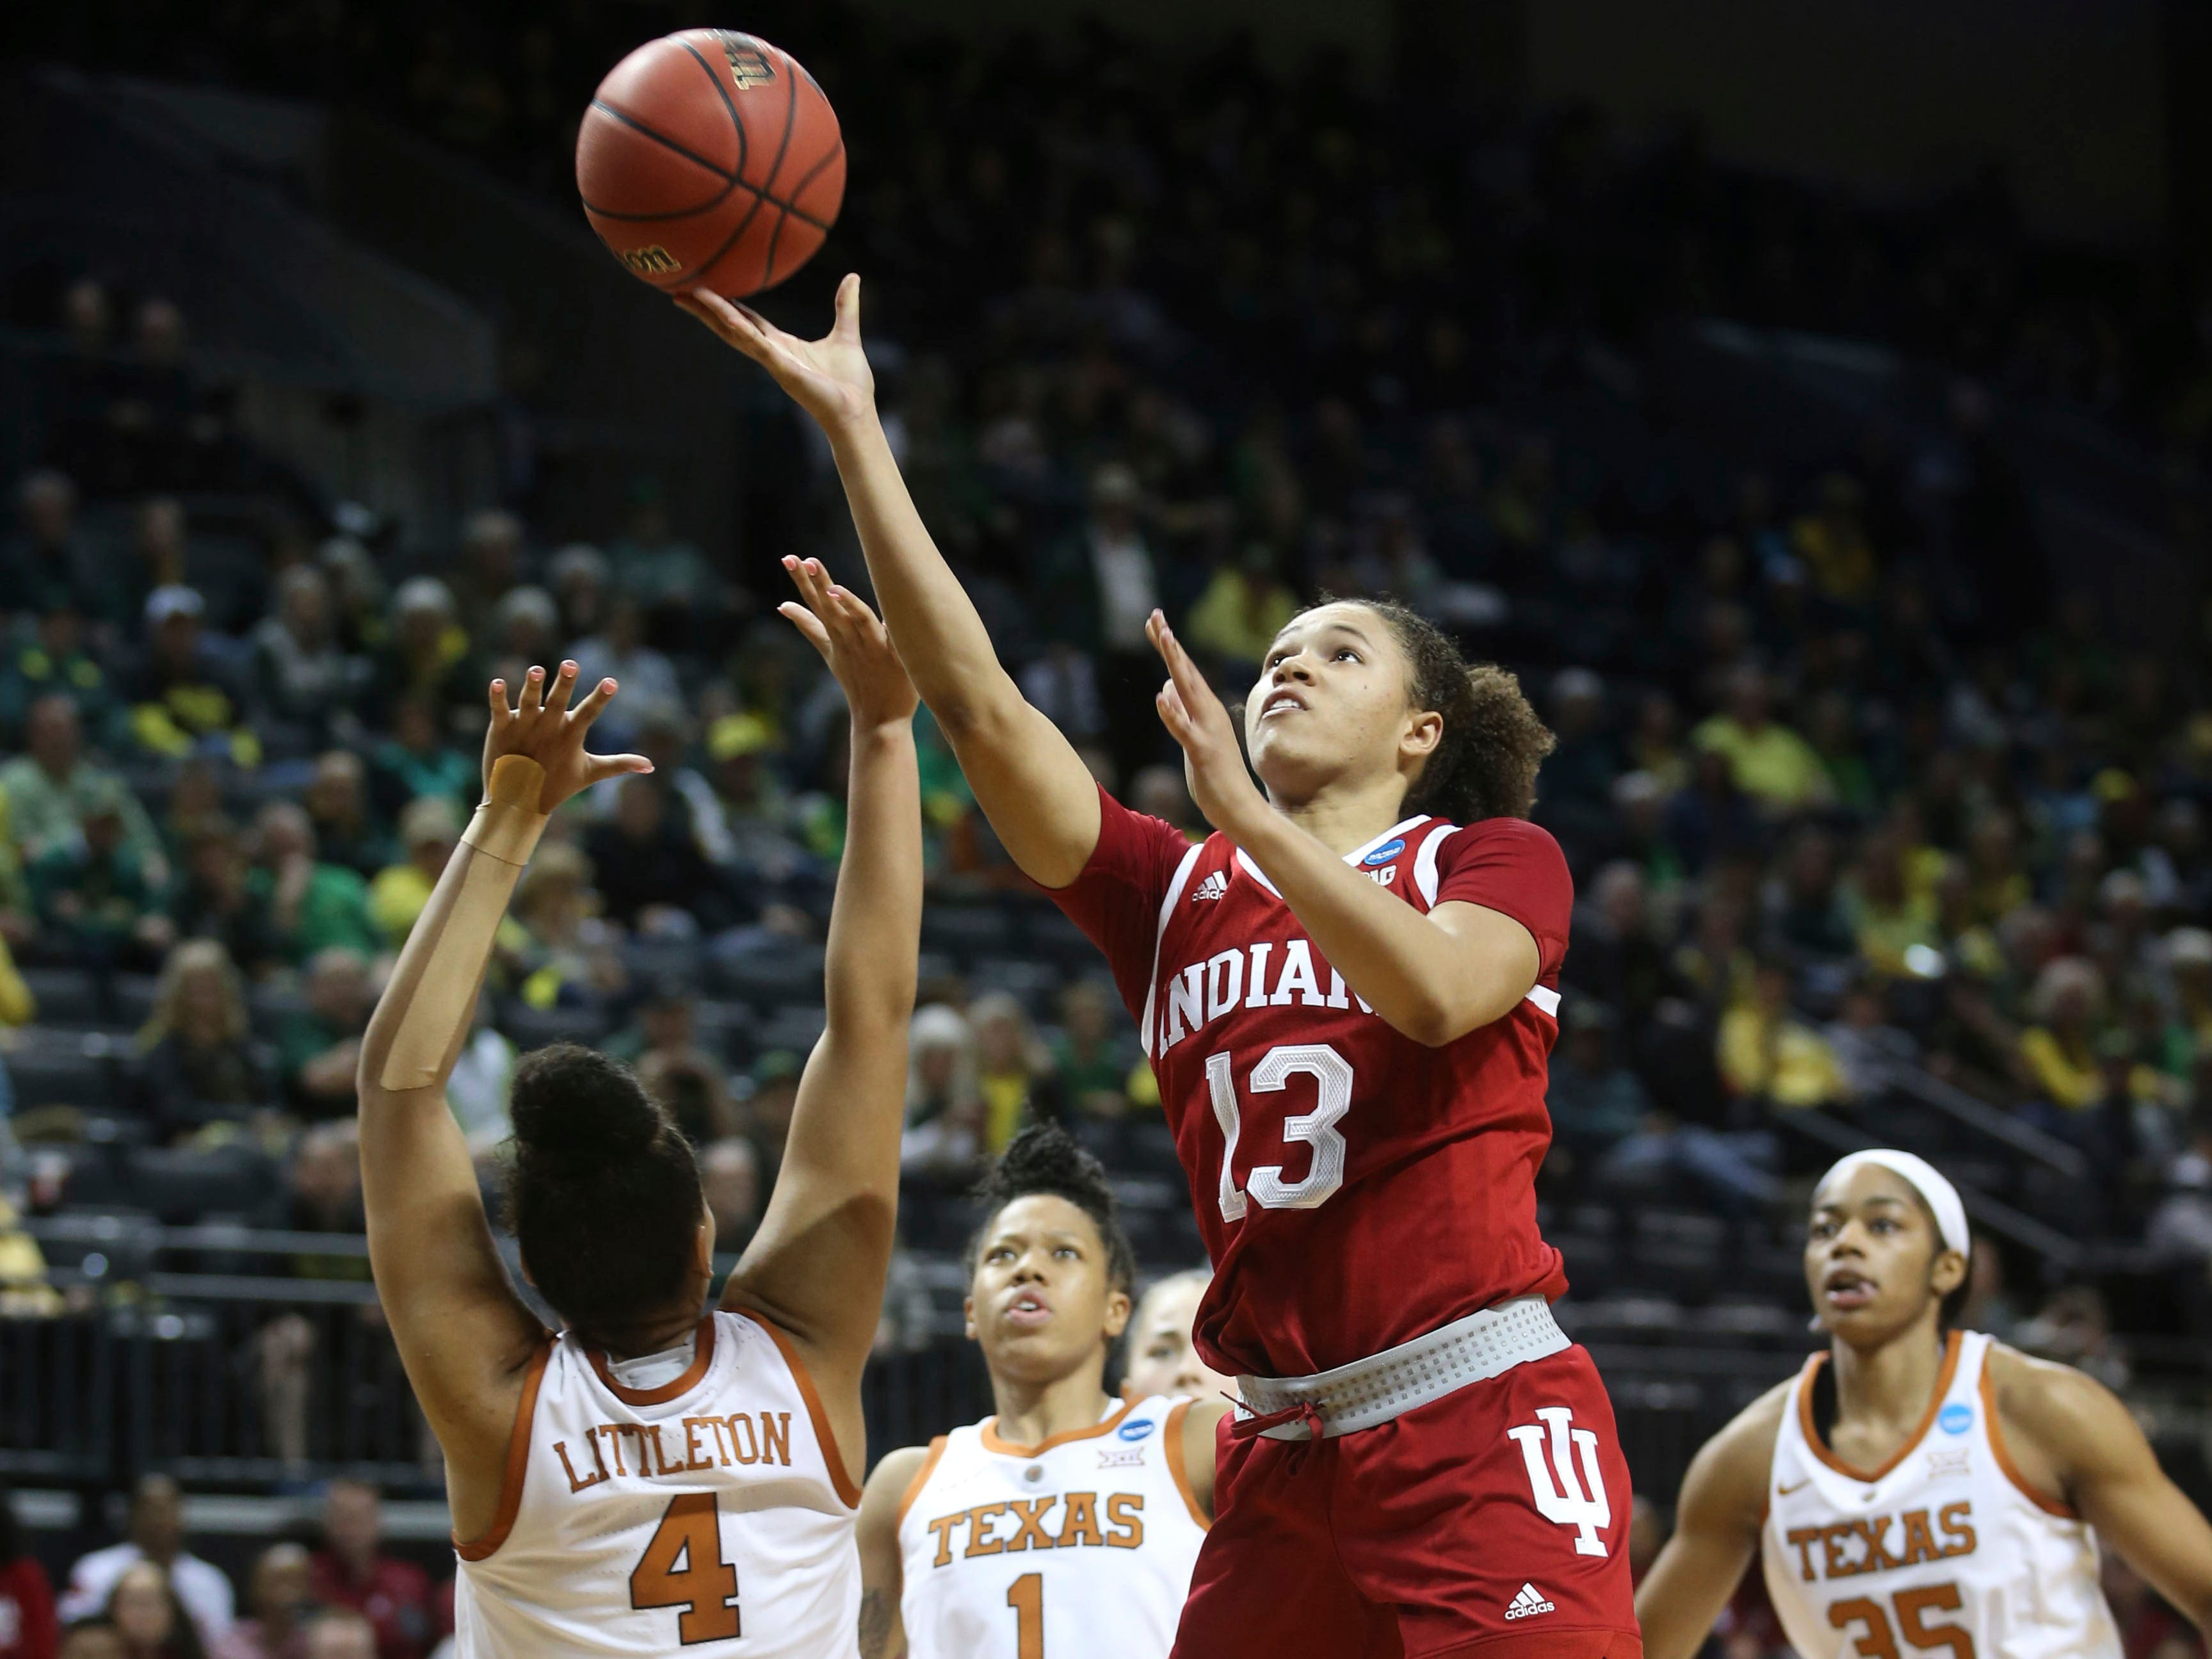 Indiana's Jaelynn Penn, center, shoots between Texas' Destiny Littleton, left, Sug Sutton and Charli Collier, right, during the second half of a first-round game in the NCAA women's college basketball tournament Friday, March 22, 2019, in Eugene, Ore.